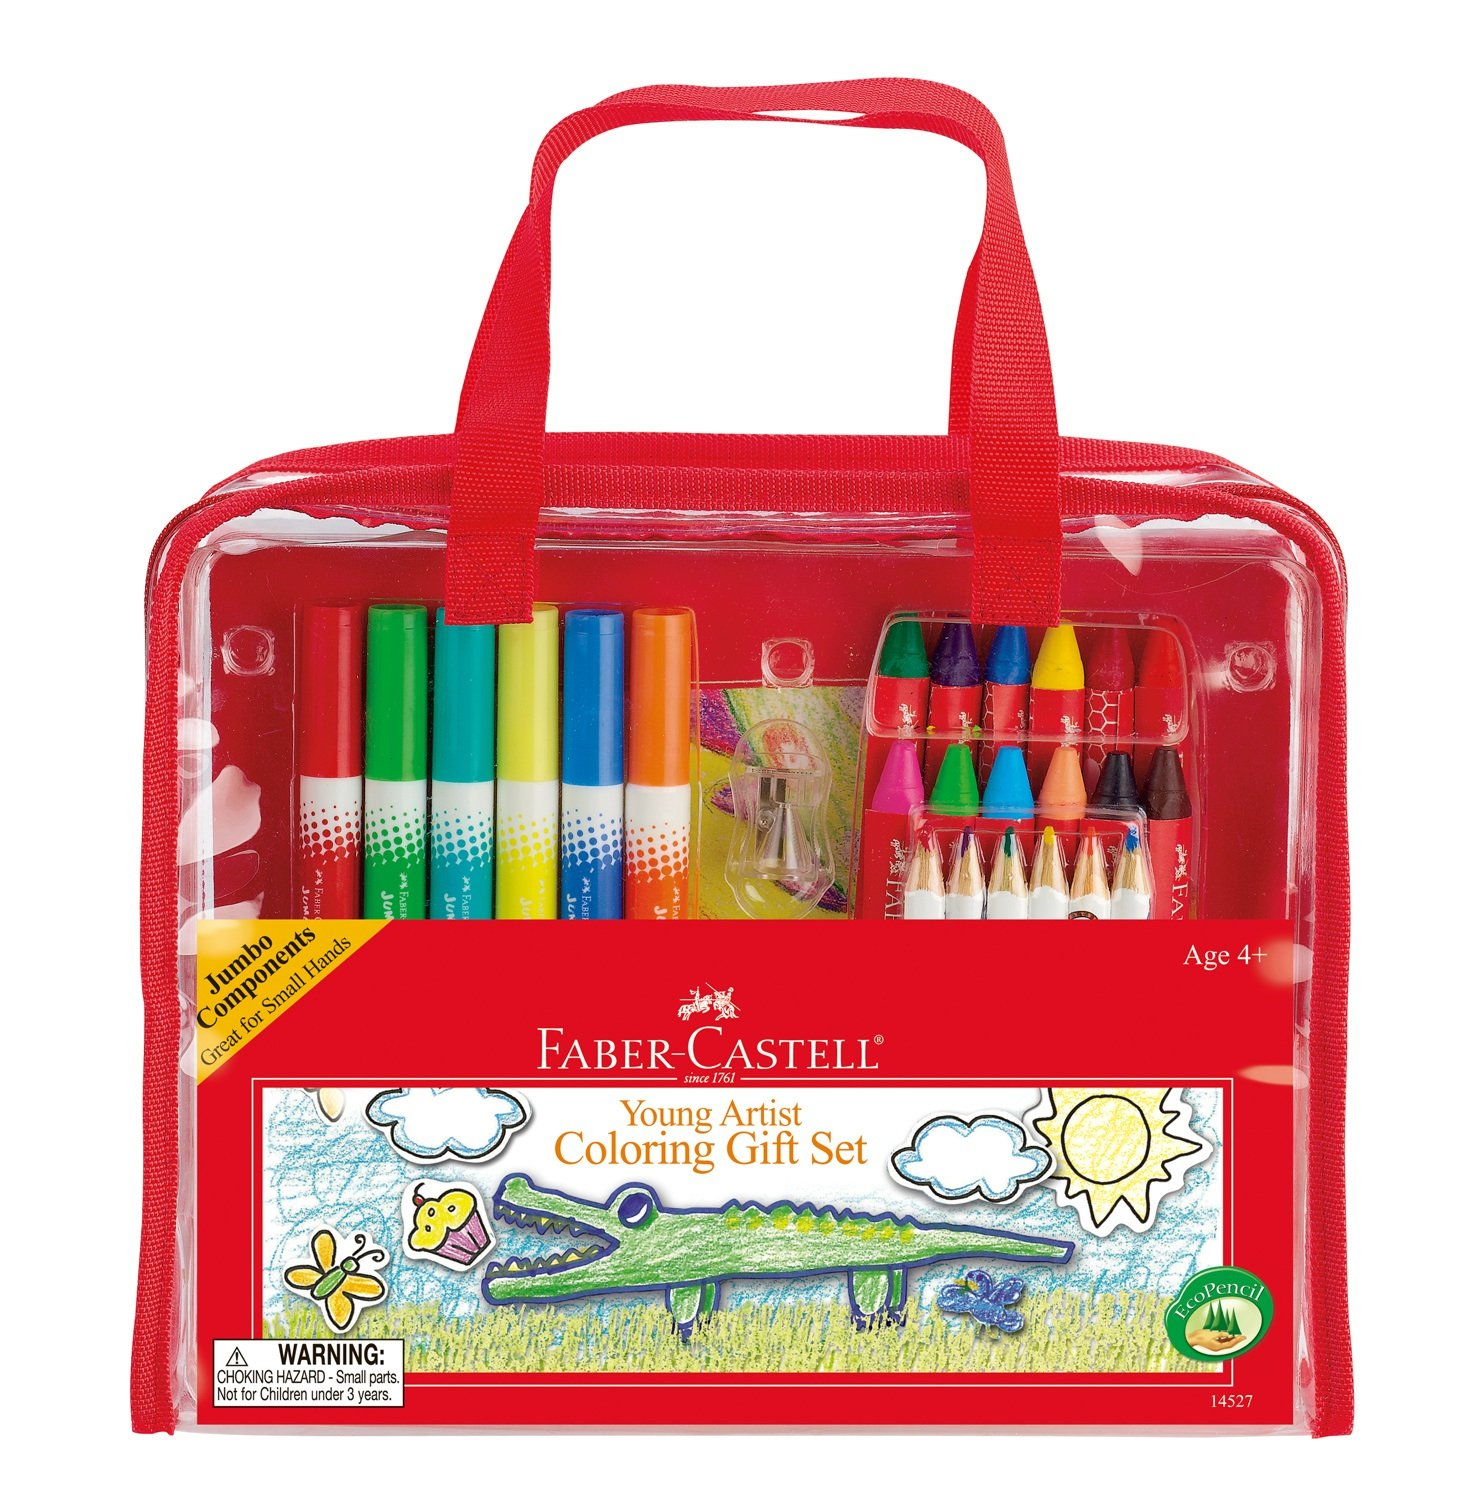 Faber Castell Young Artist Coloring Gift